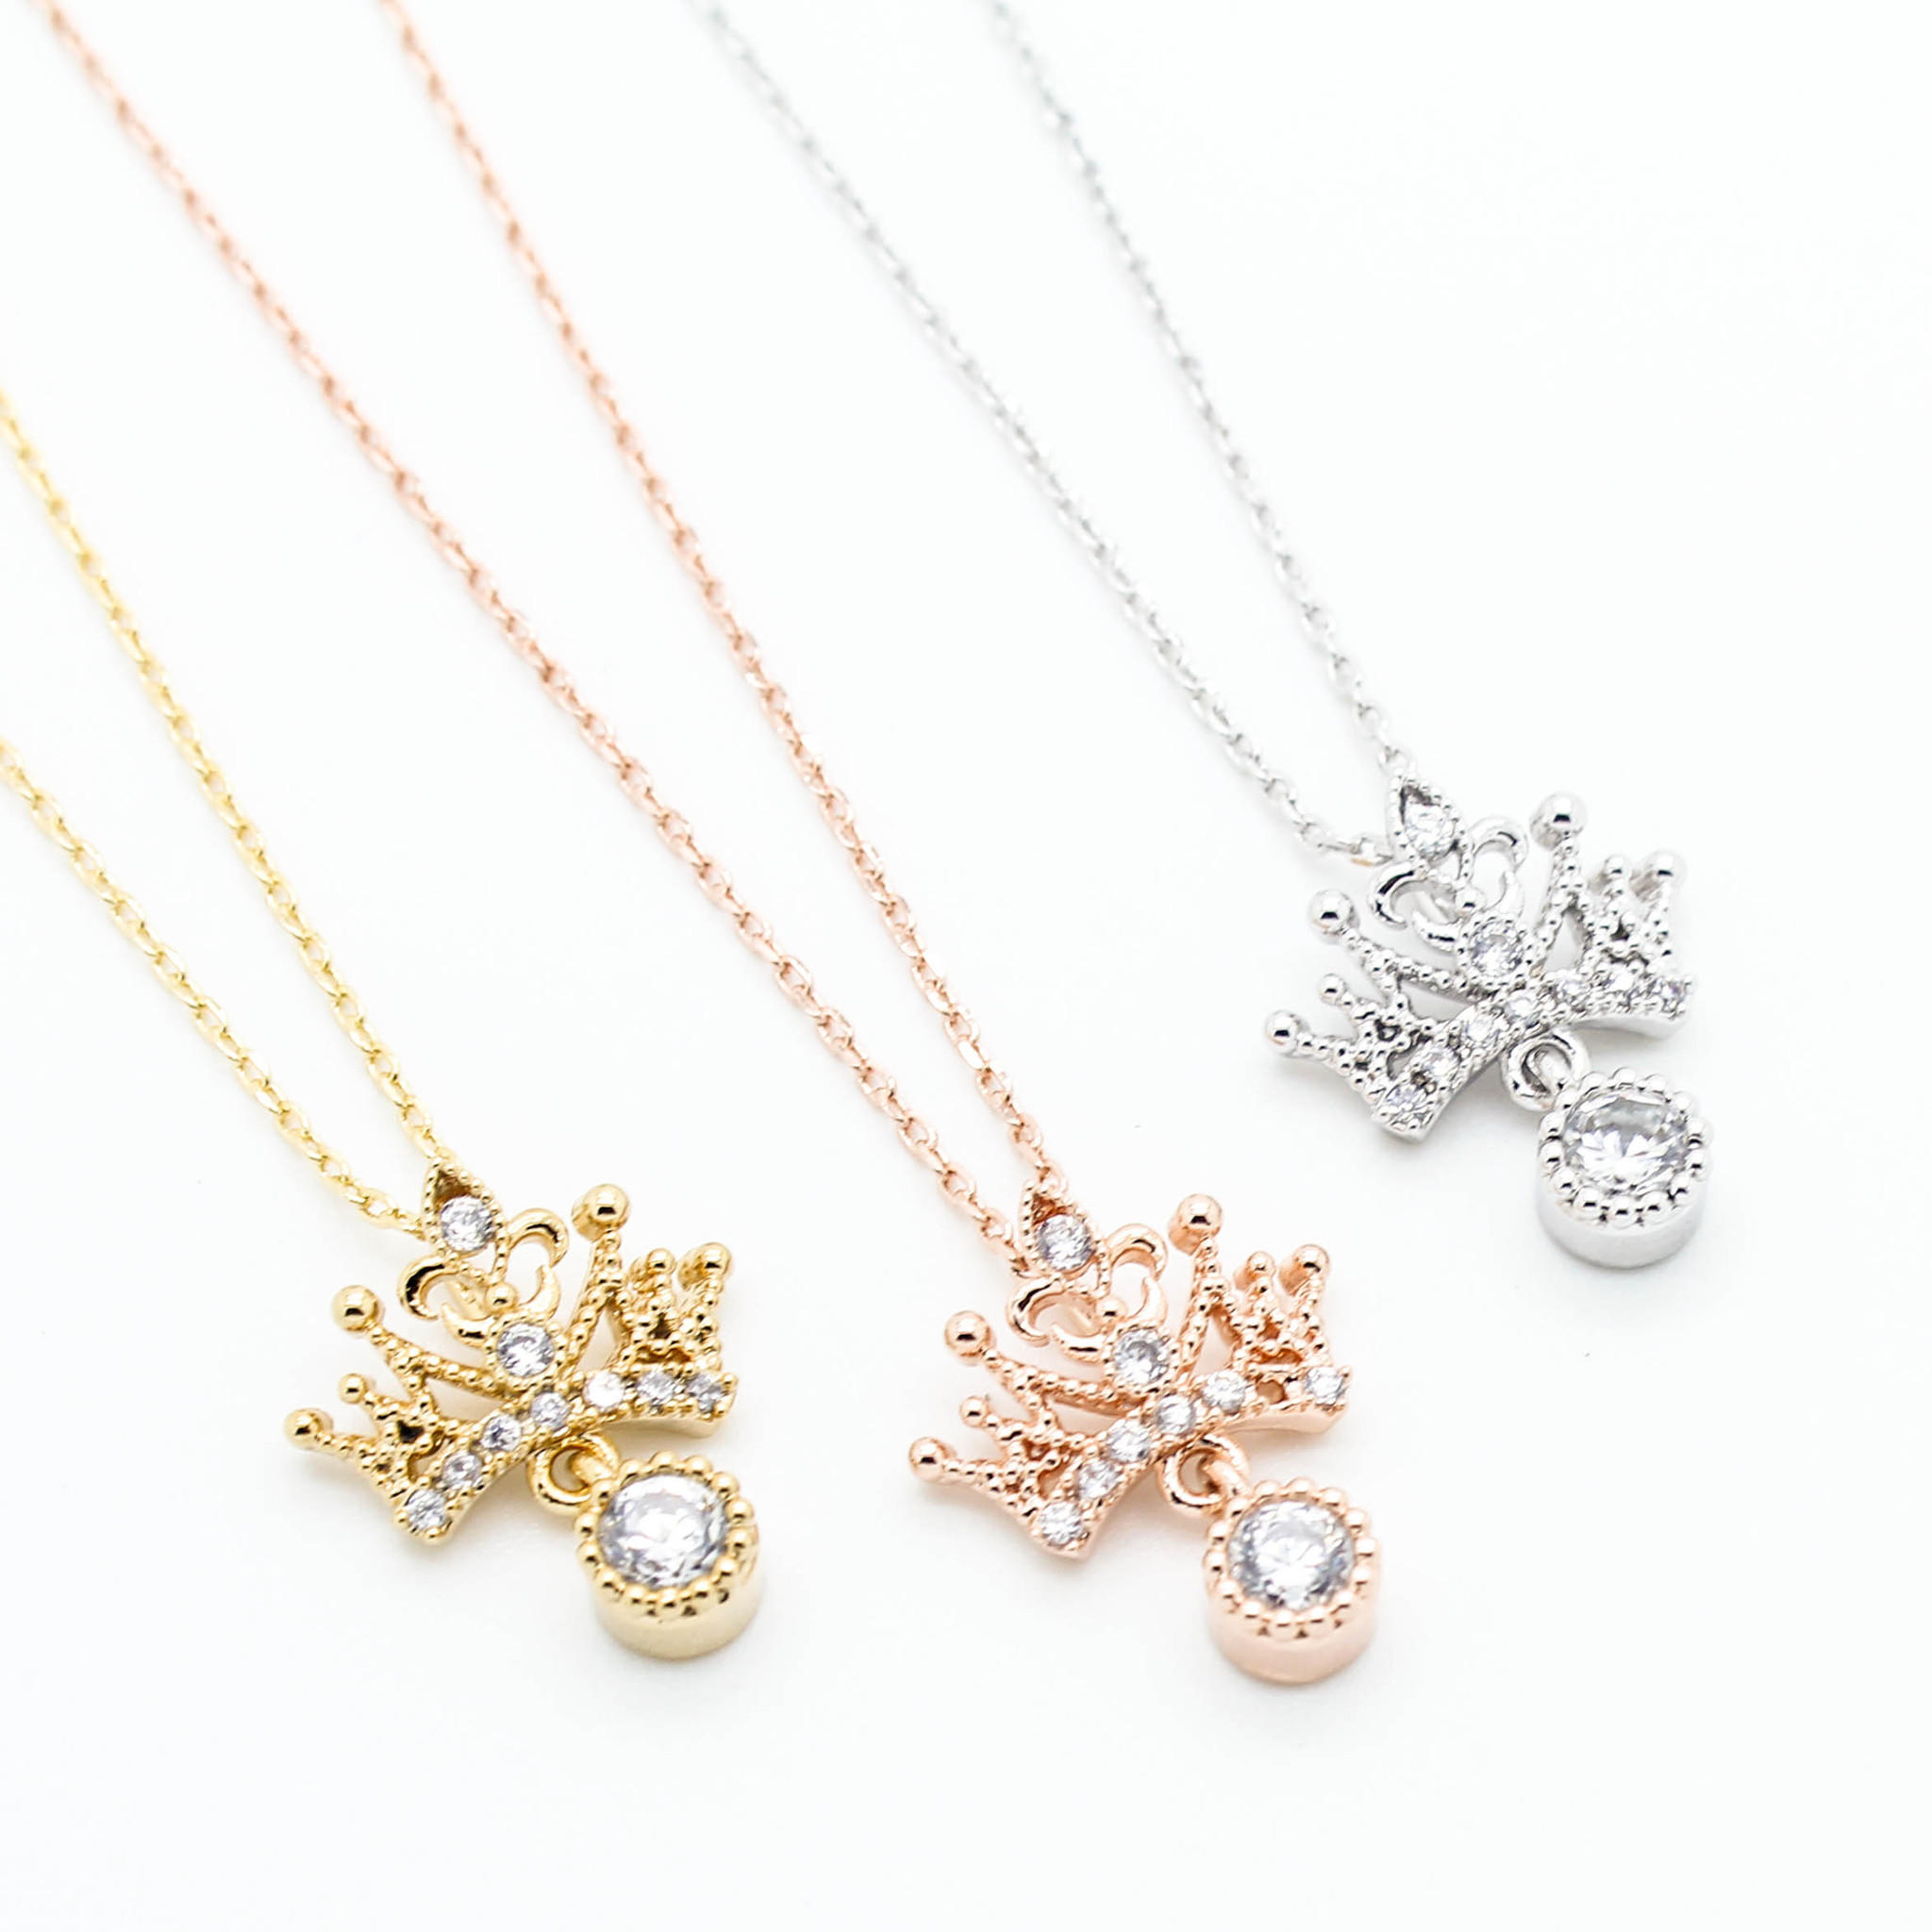 Image of Crown necklace